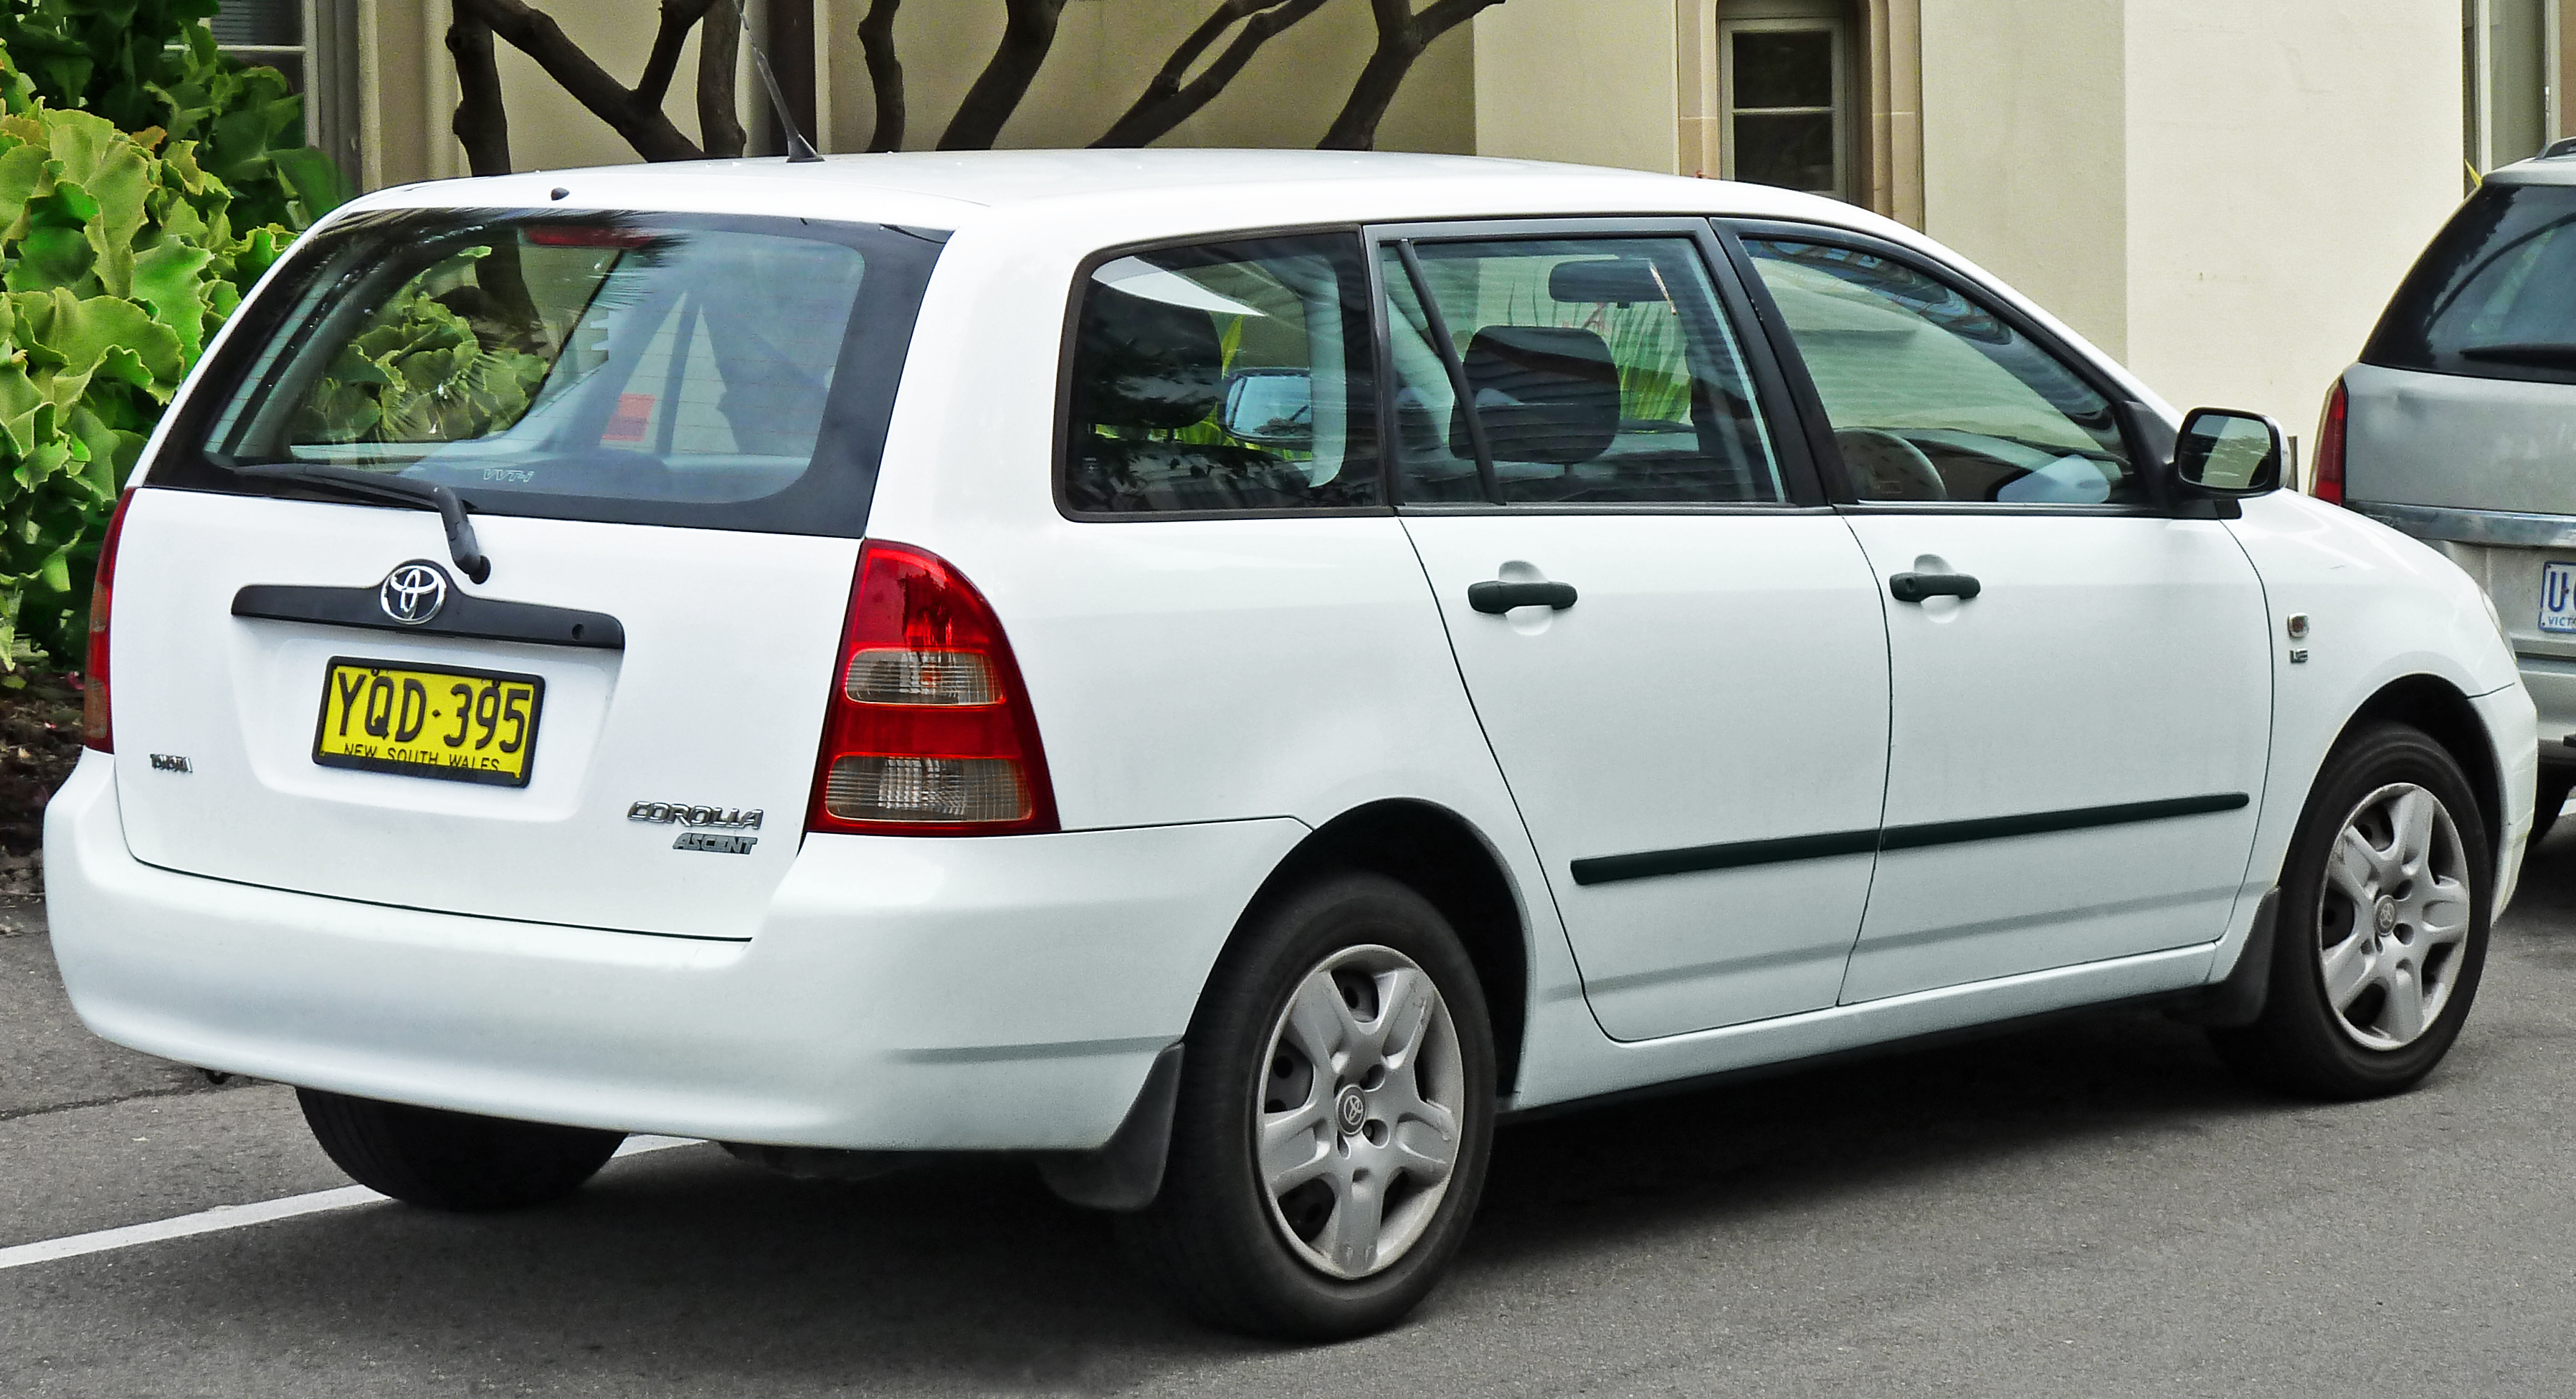 file:2003 toyota corolla (zze122r) ascent station wagon (2011-12